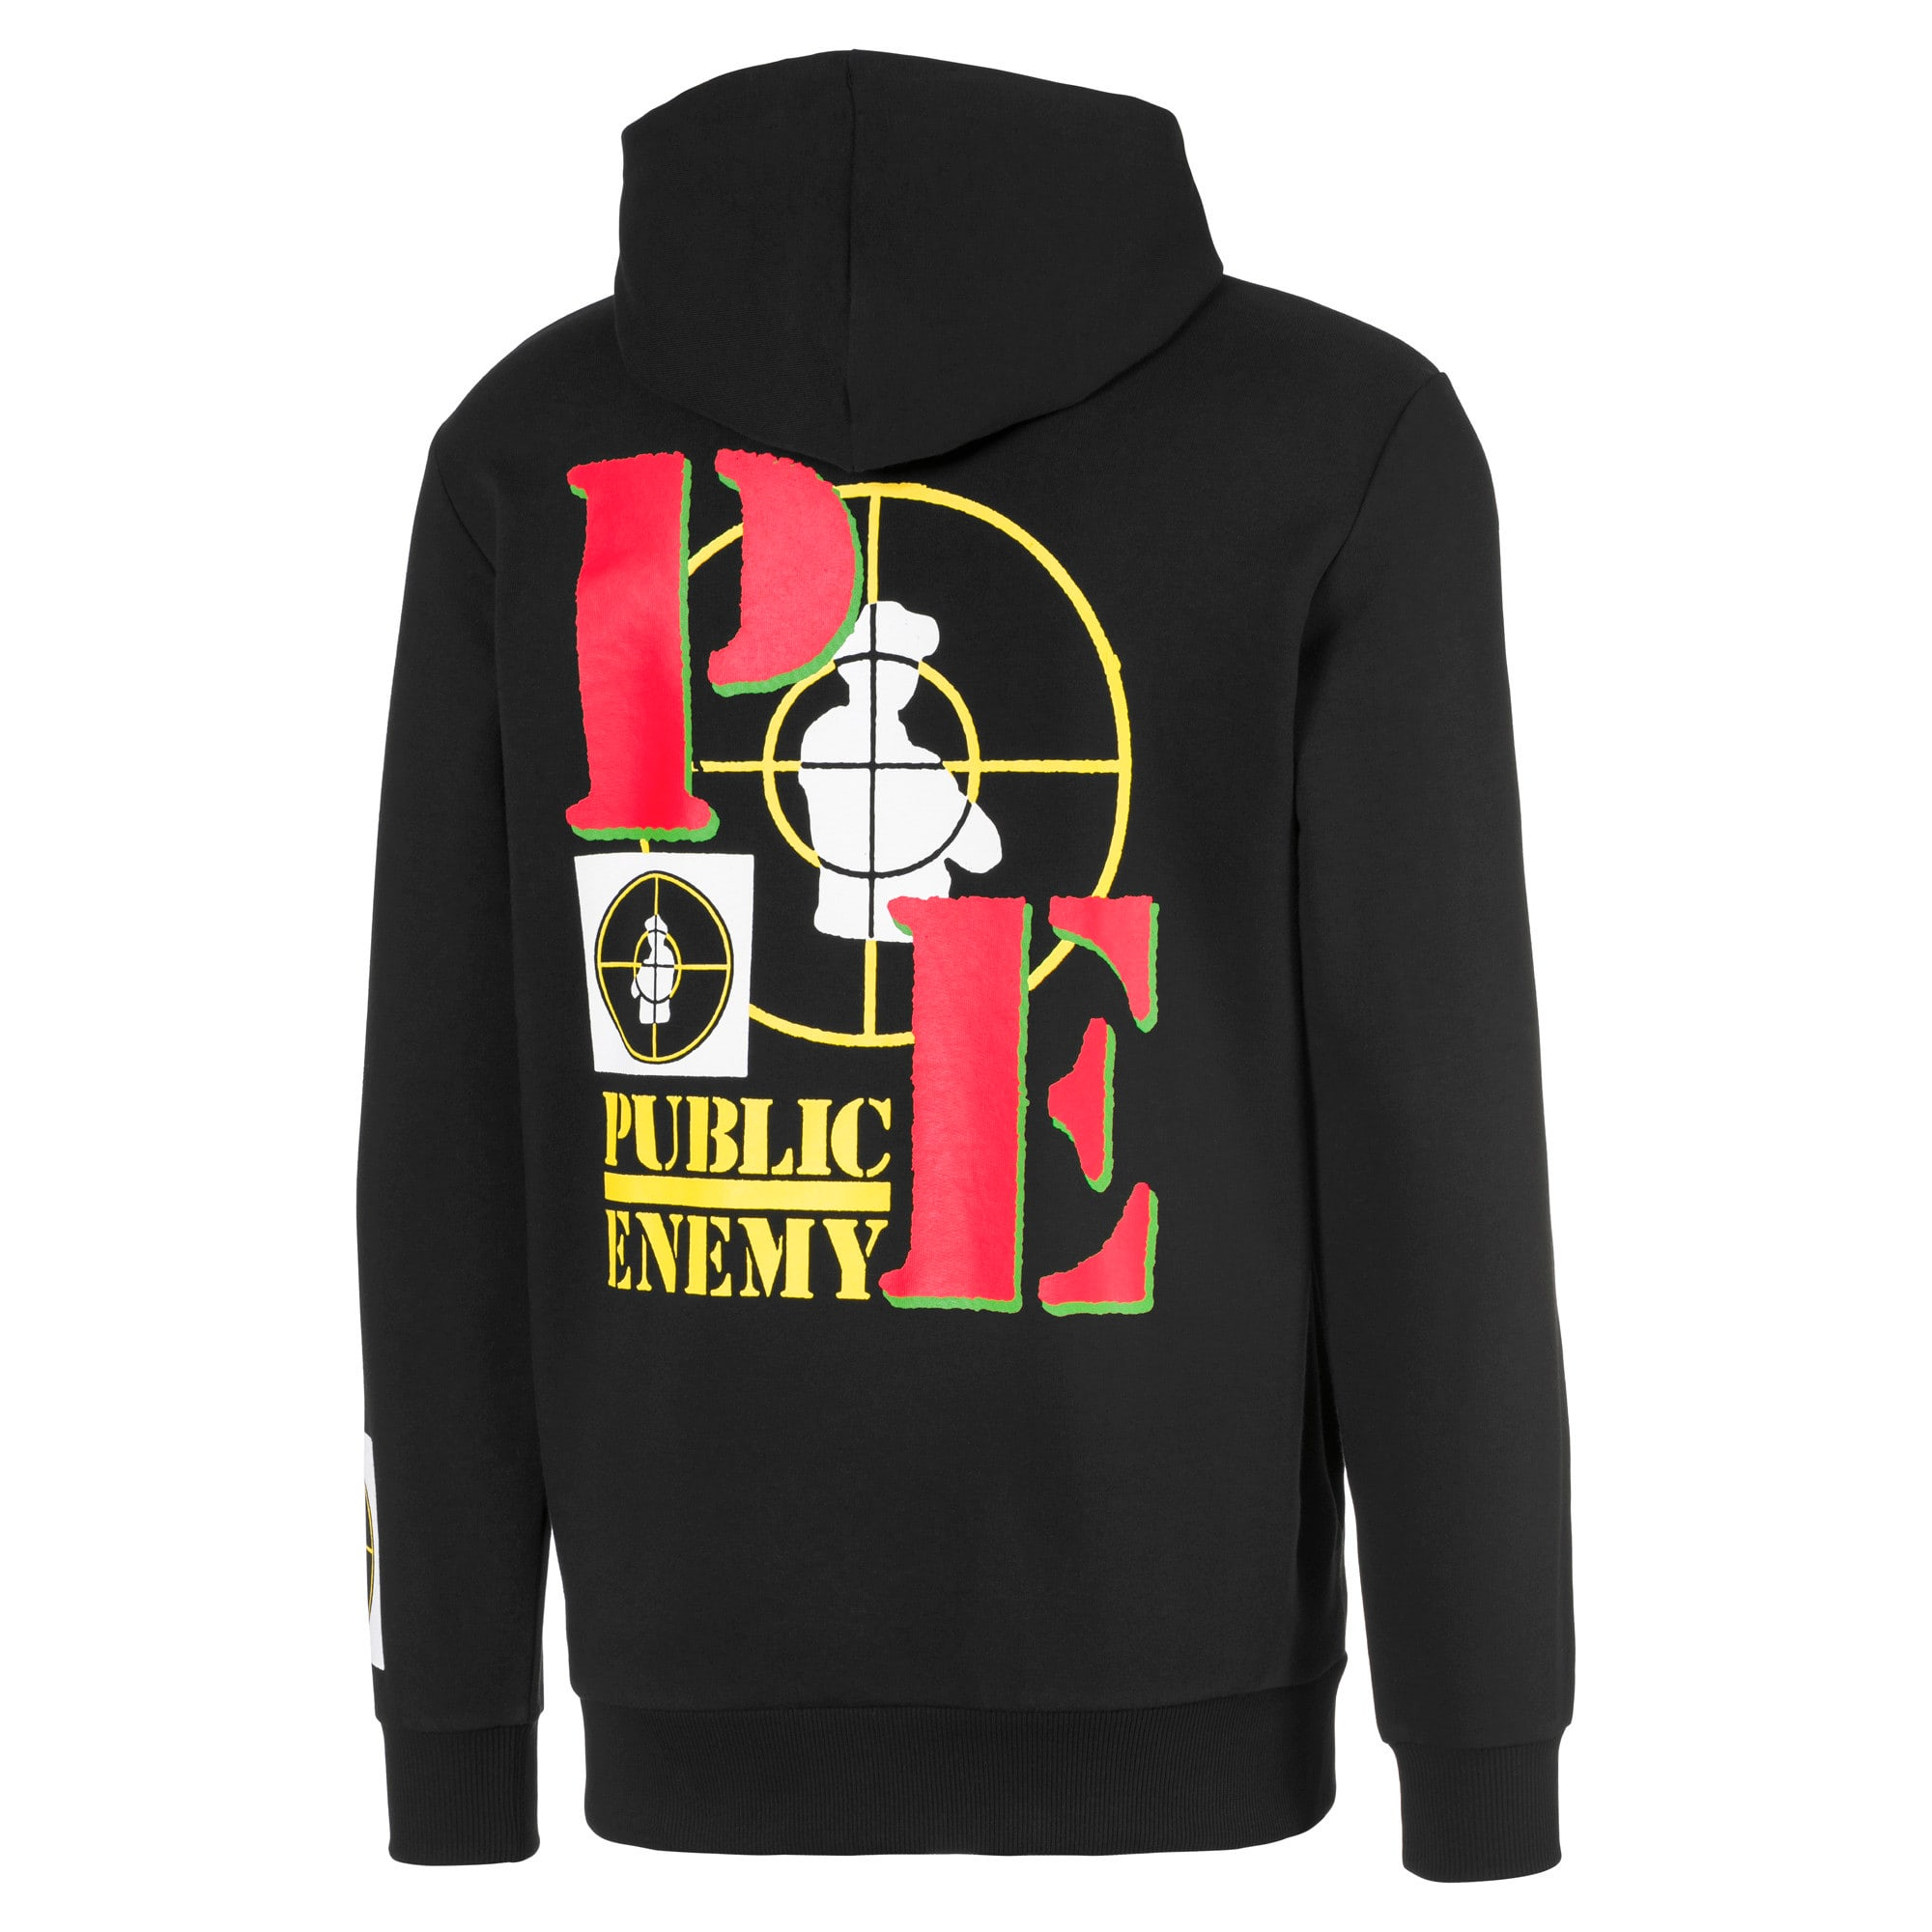 Thumbnail 2 of PUMA x PUBLIC ENEMY Men's Hoodie, Puma Black, medium